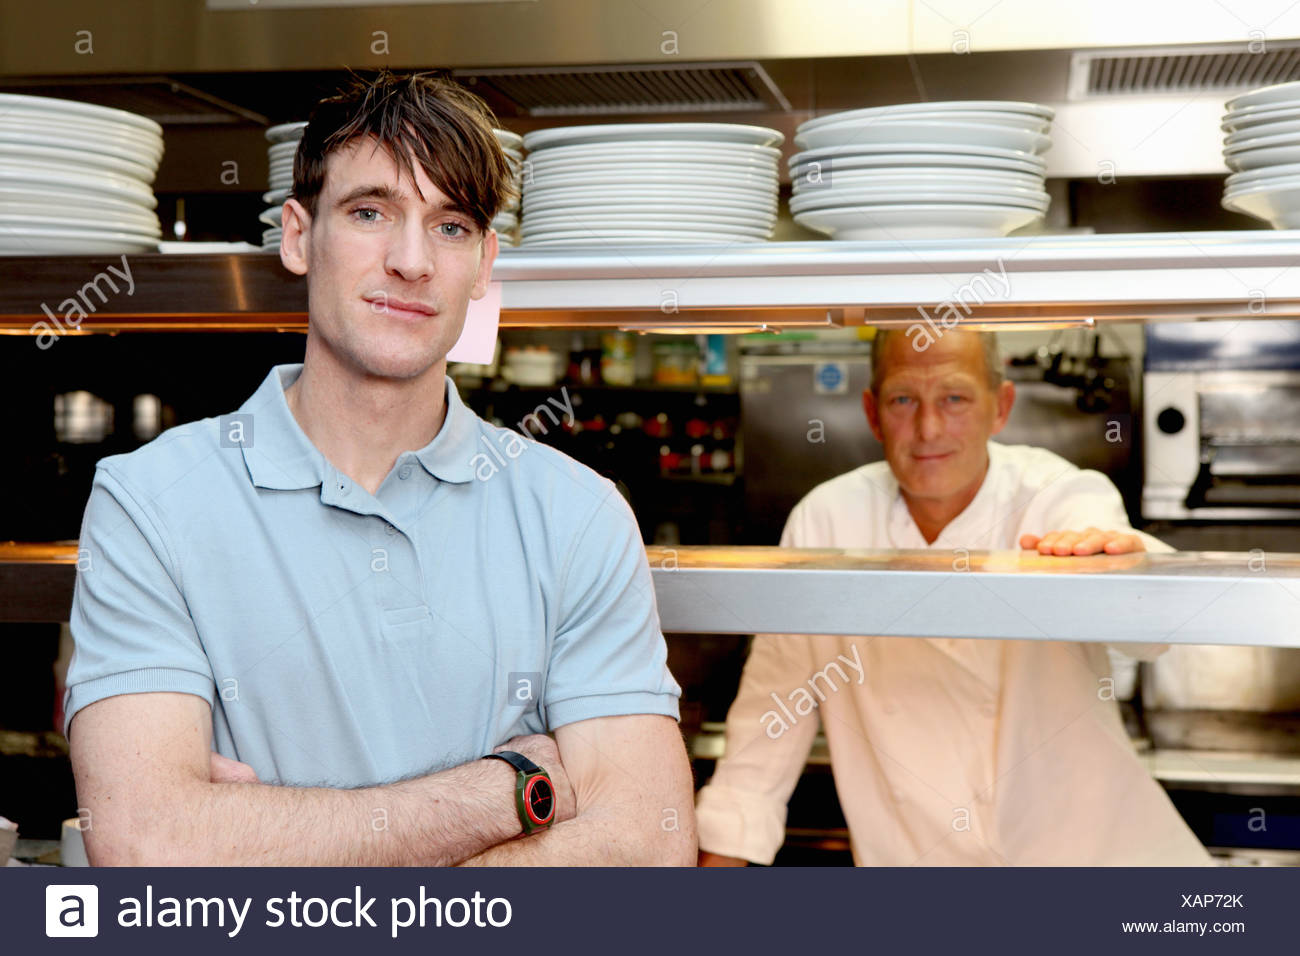 Chef and waiter in kitchen - Stock Image